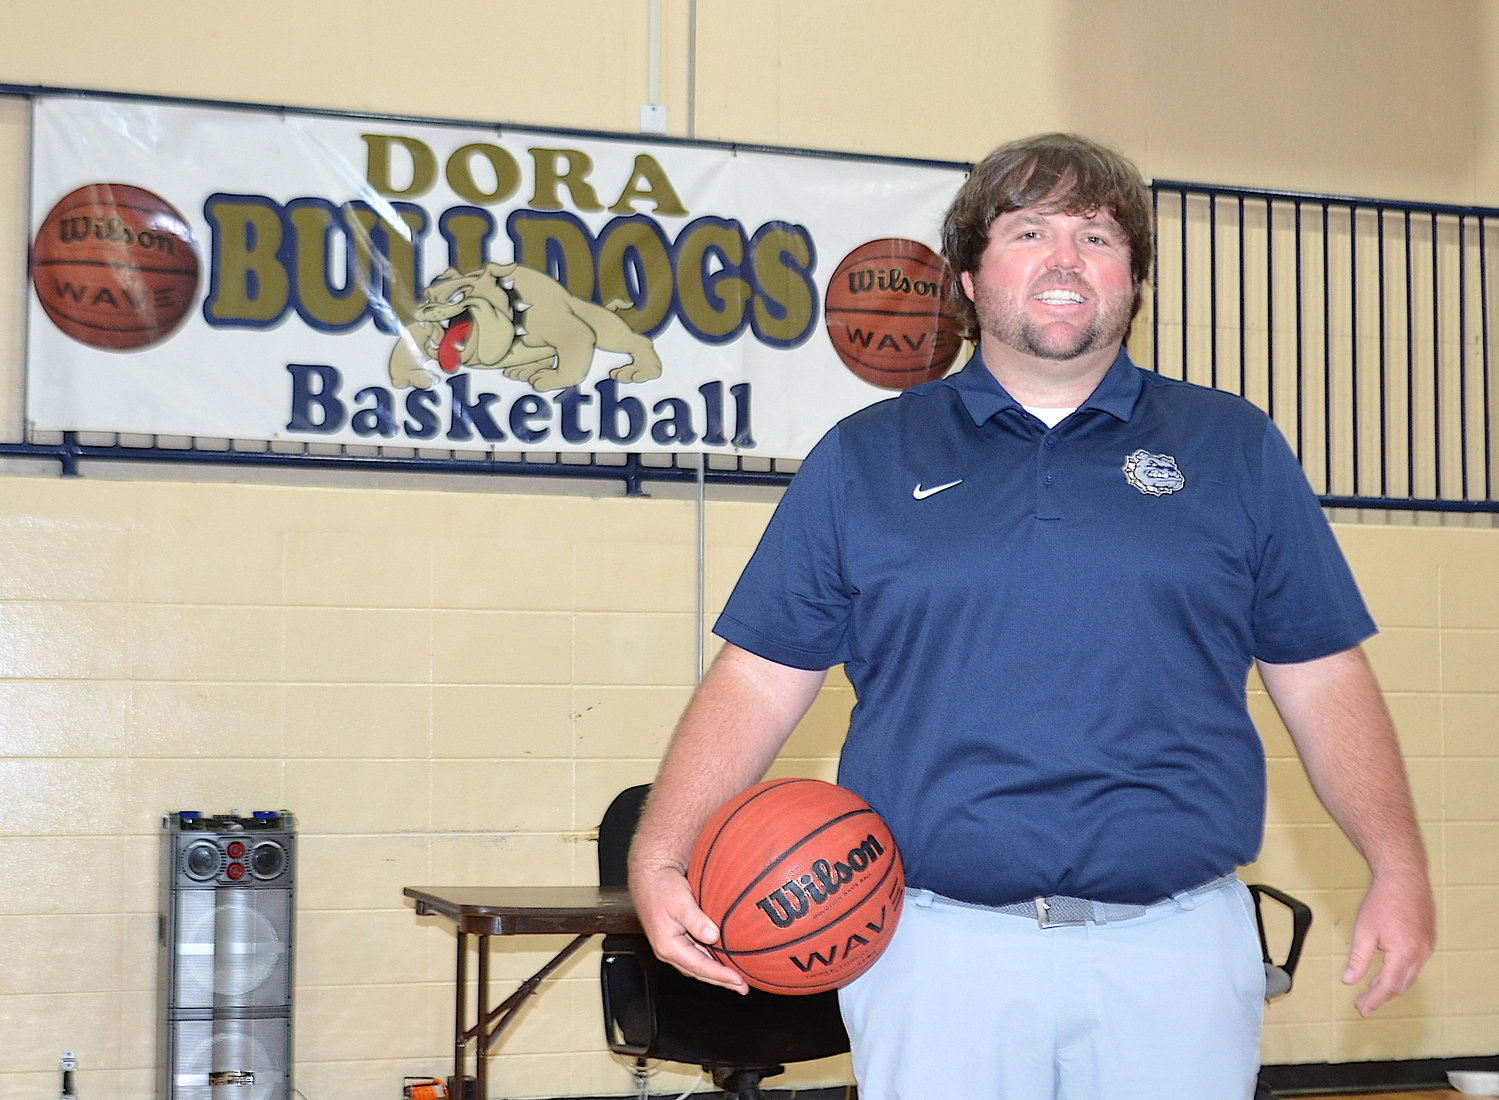 Justin Blevins is the new Dora girls basketball head coach. He spent the last three years as the school's head baseball coach. He replaces Michael Bridges, who is remaining at the school as the boys head coach.